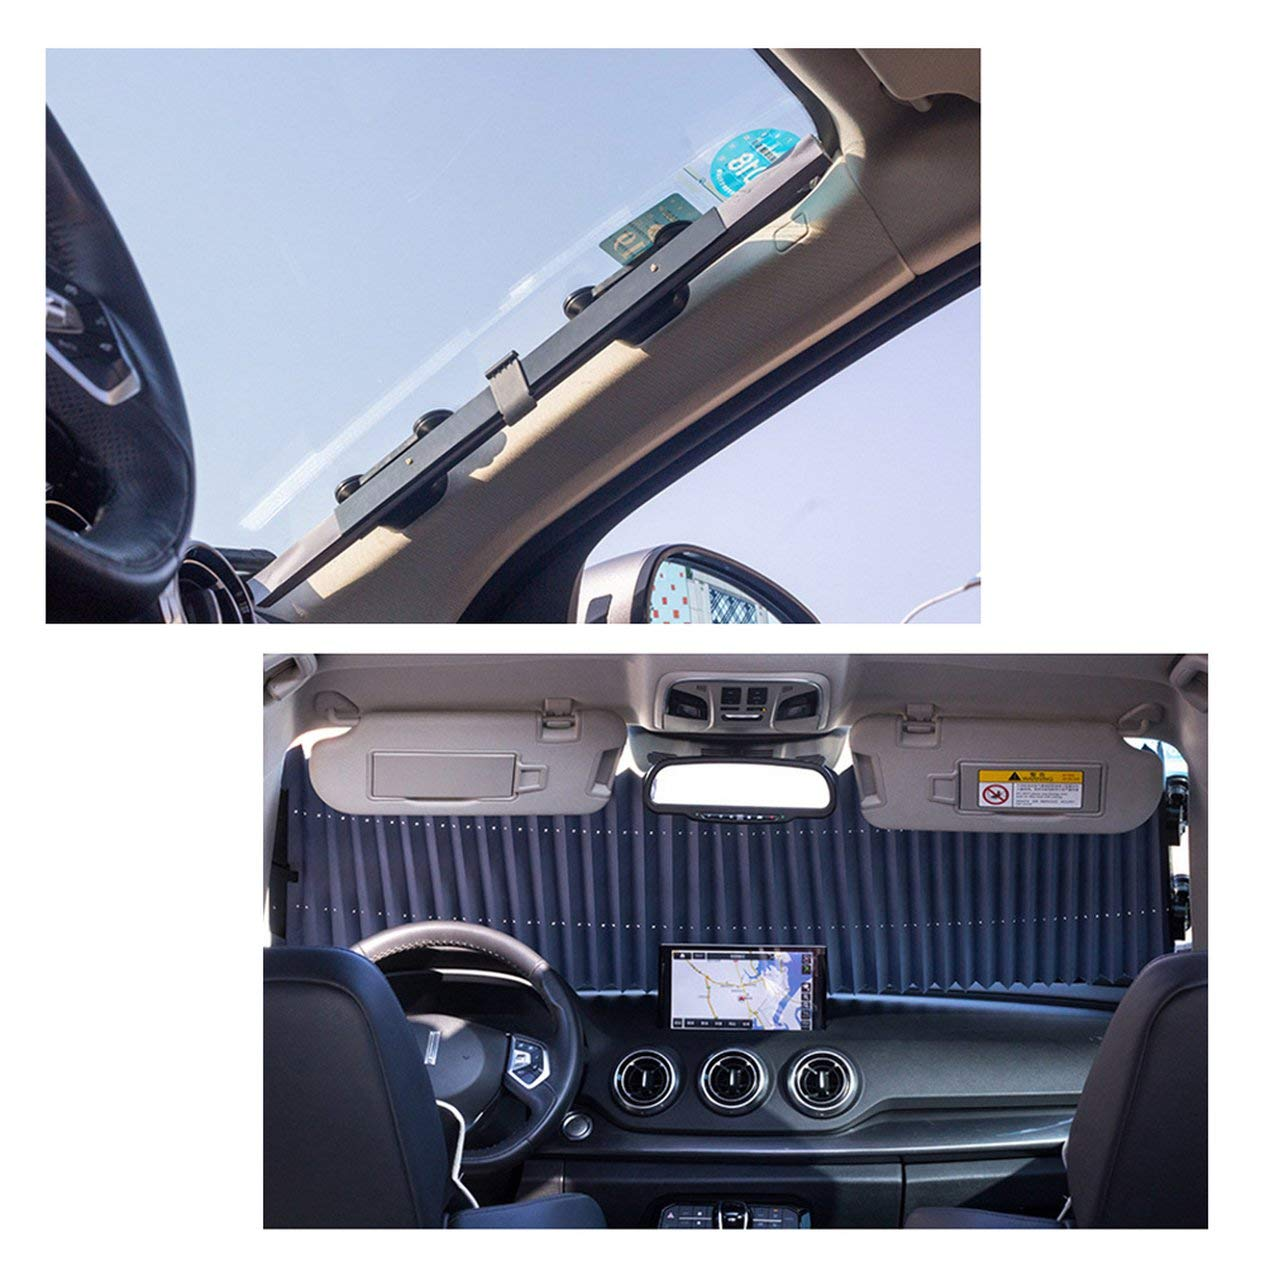 EdBerk74 Front Gear Off-road Vehicle With Double Boxes Of Automobile Retractable Shade Curtain Window SunShades Screen Holder-black